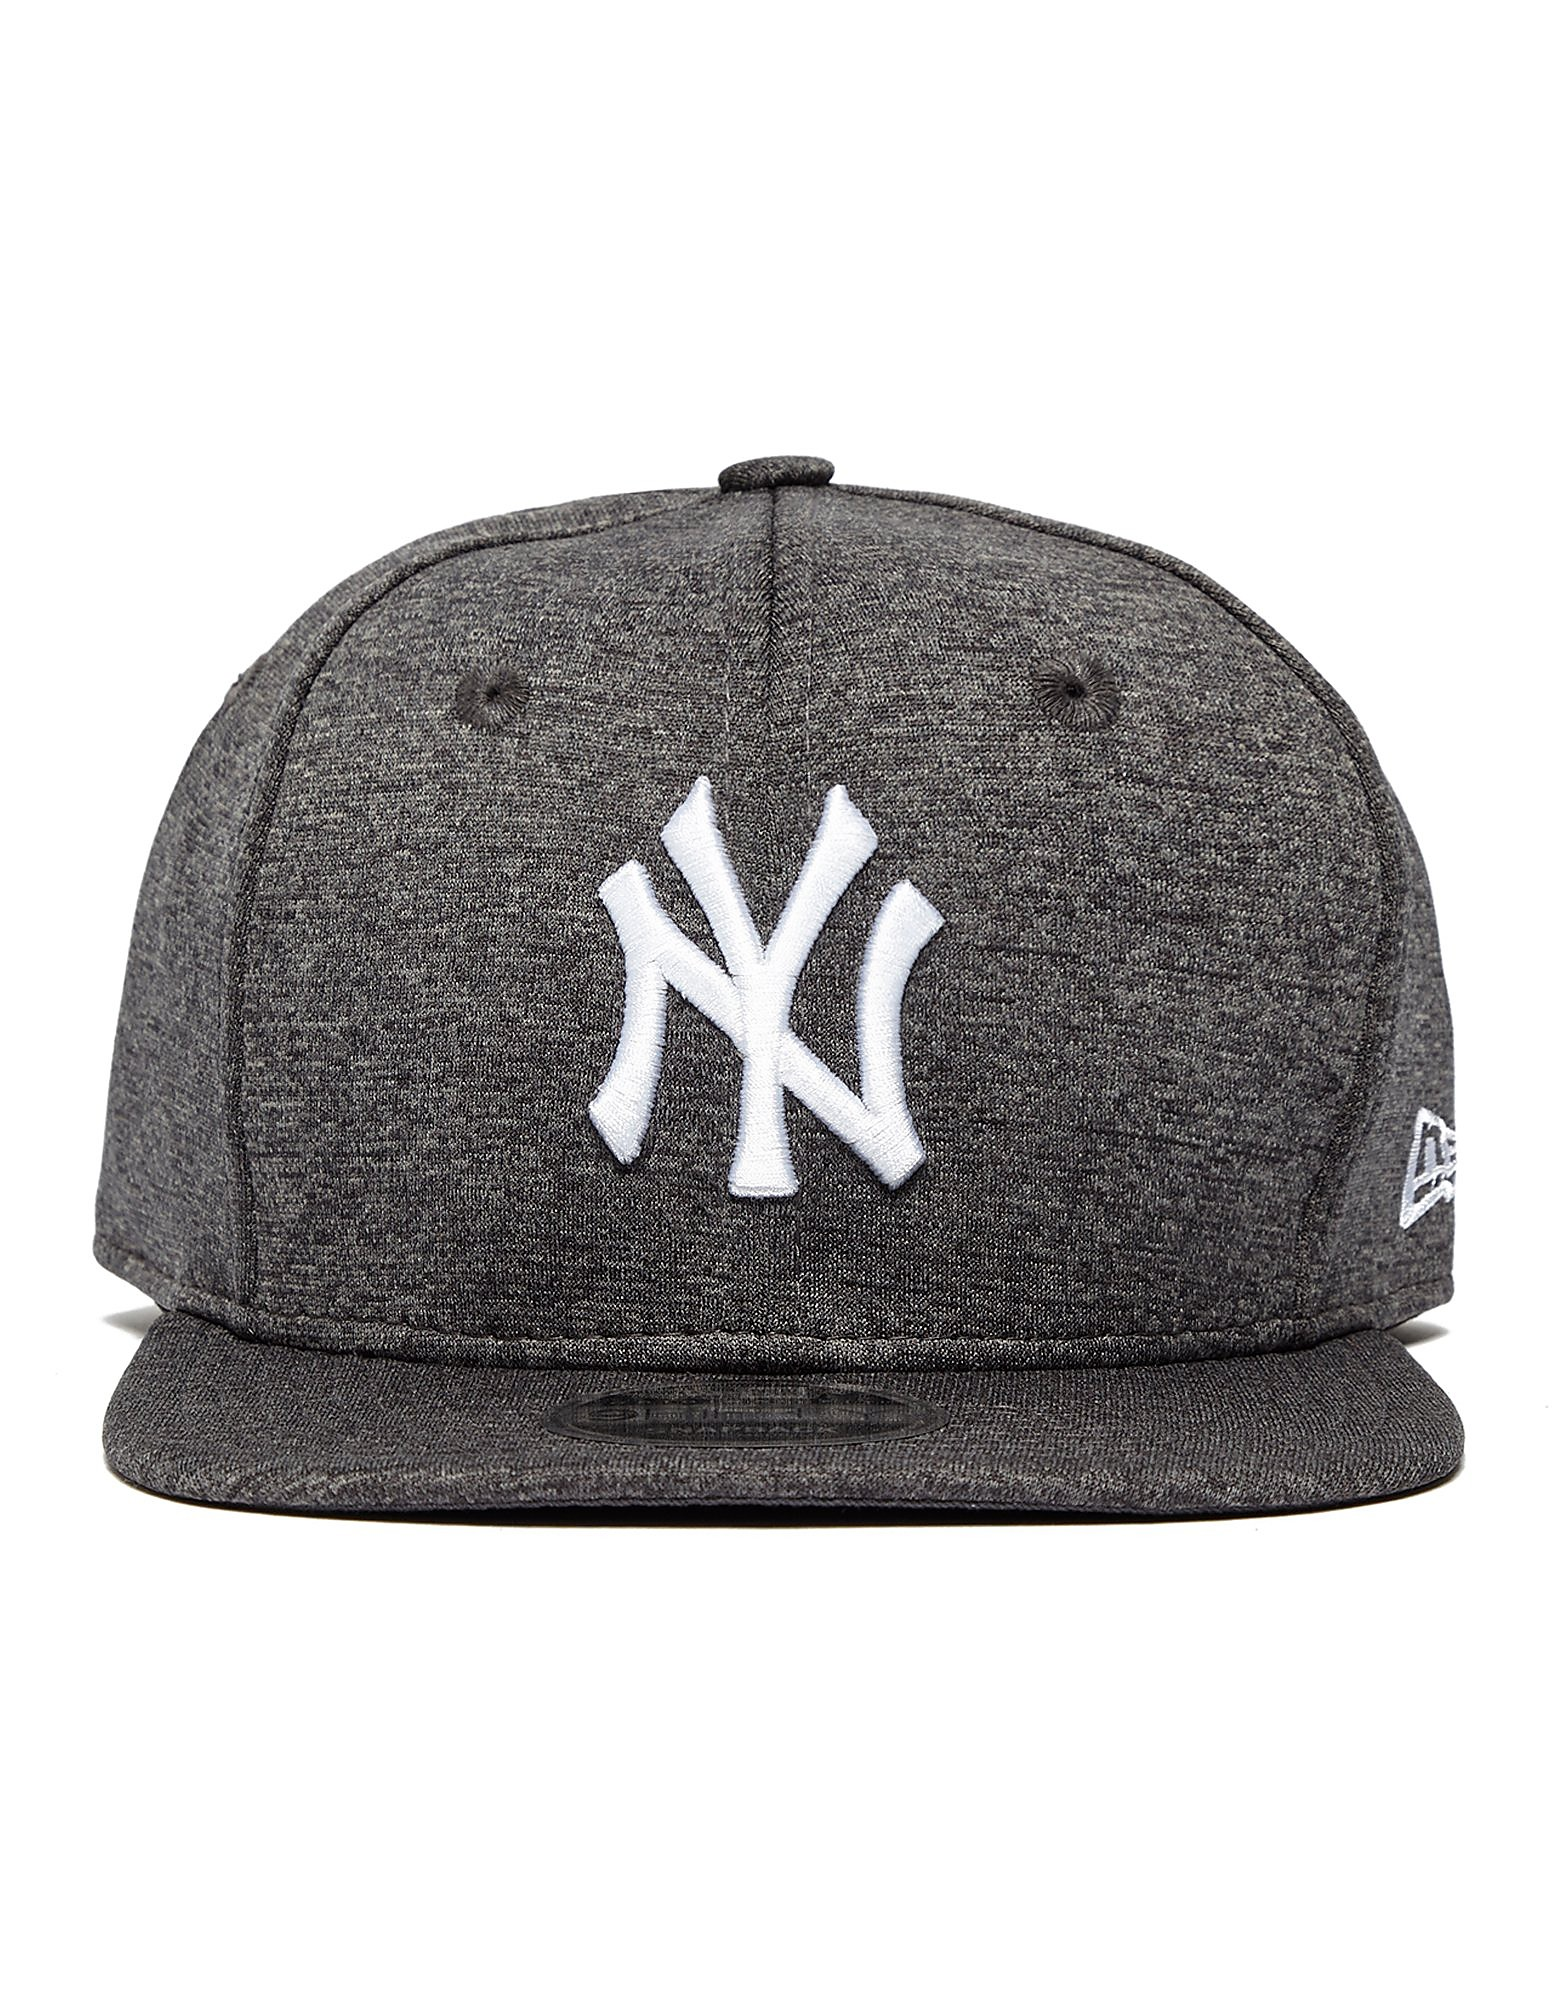 New Era gorra New York Yankees 9FIFTY